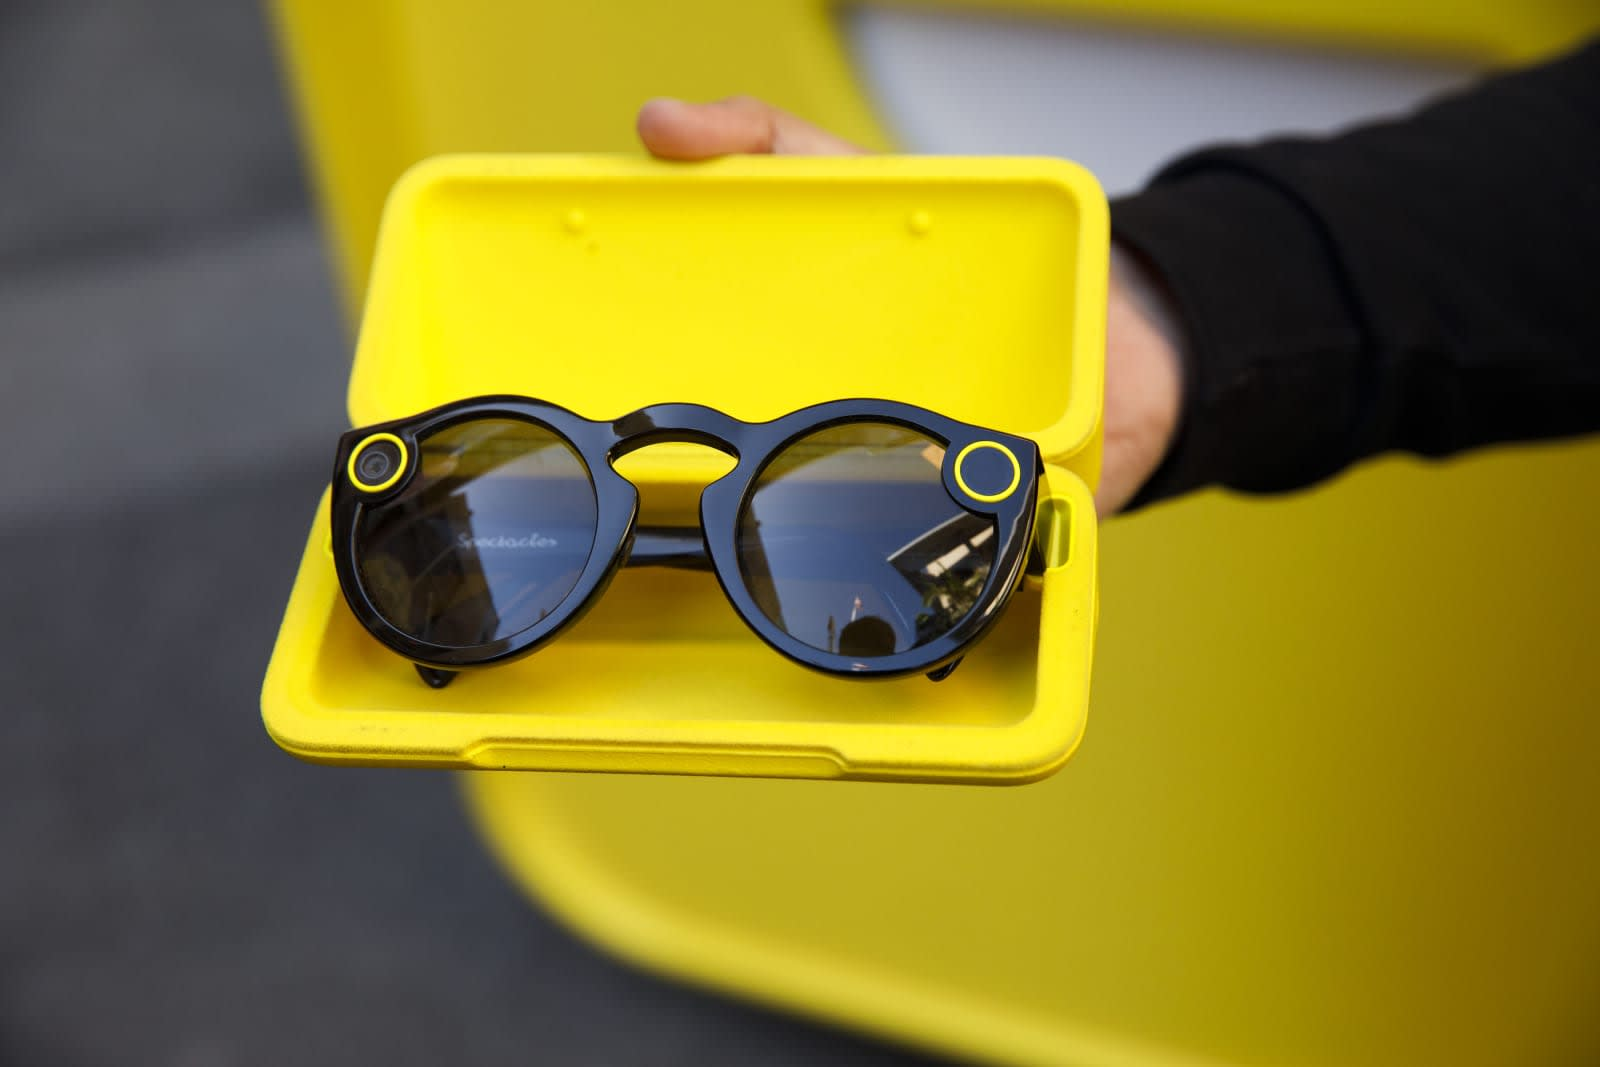 b415030b5c Snap will reportedly release AR-enabled Spectacles with dual cameras